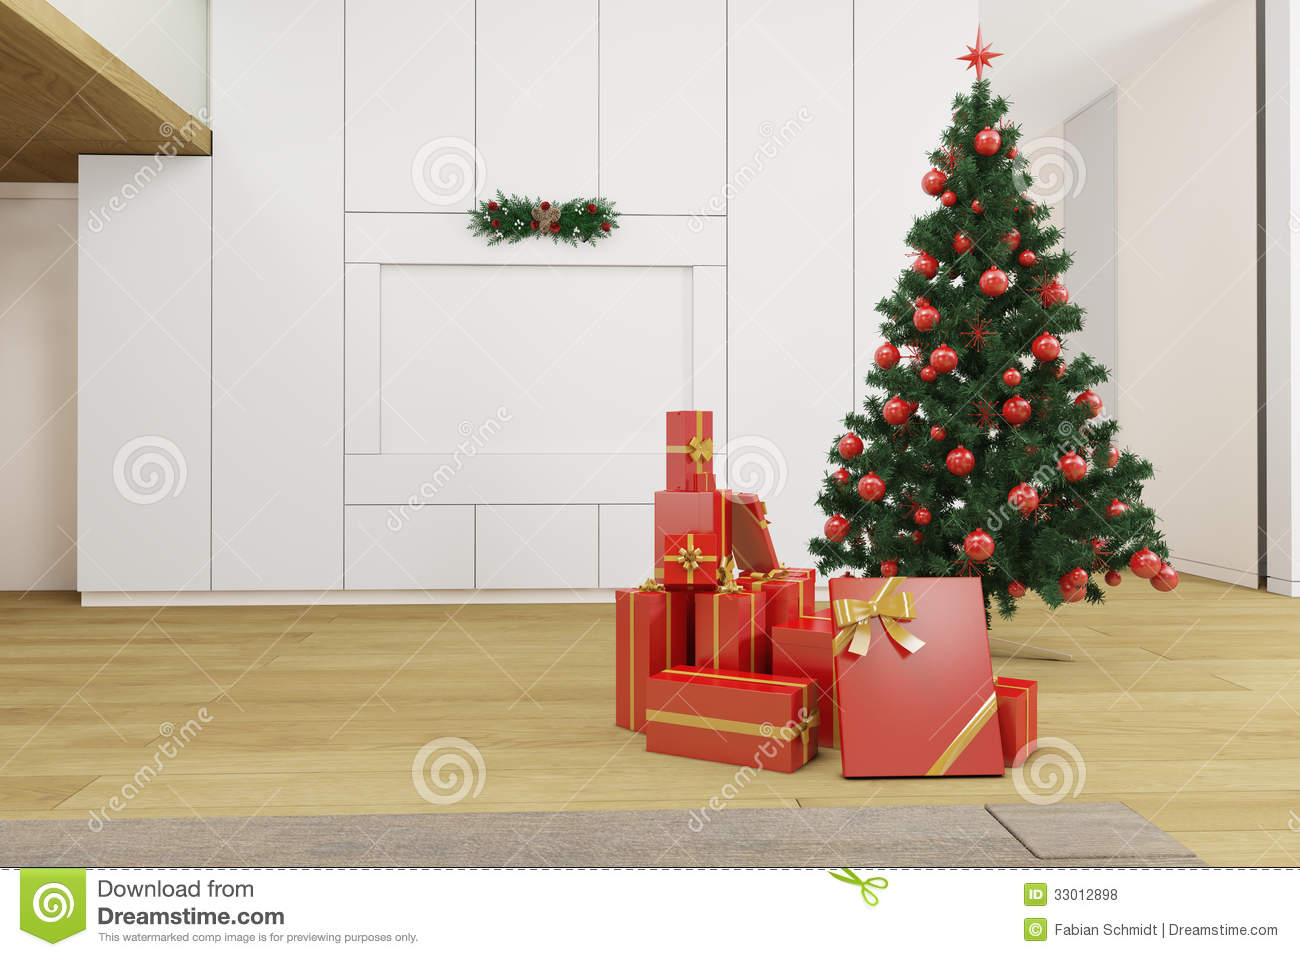 Christmas Tree Living Room living room with christmas tree royalty free stock photos - image